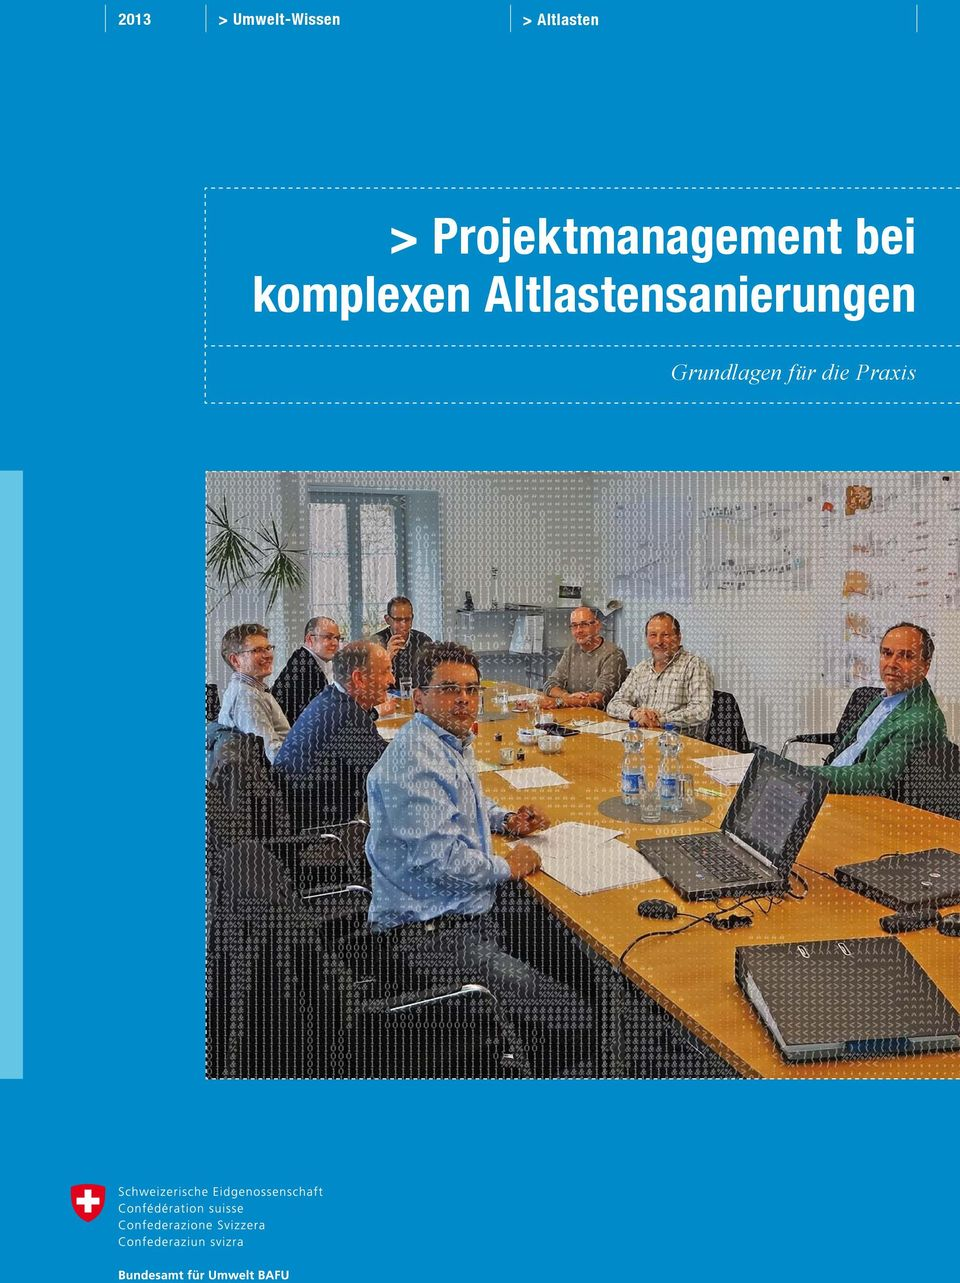 Projektmanagement bei